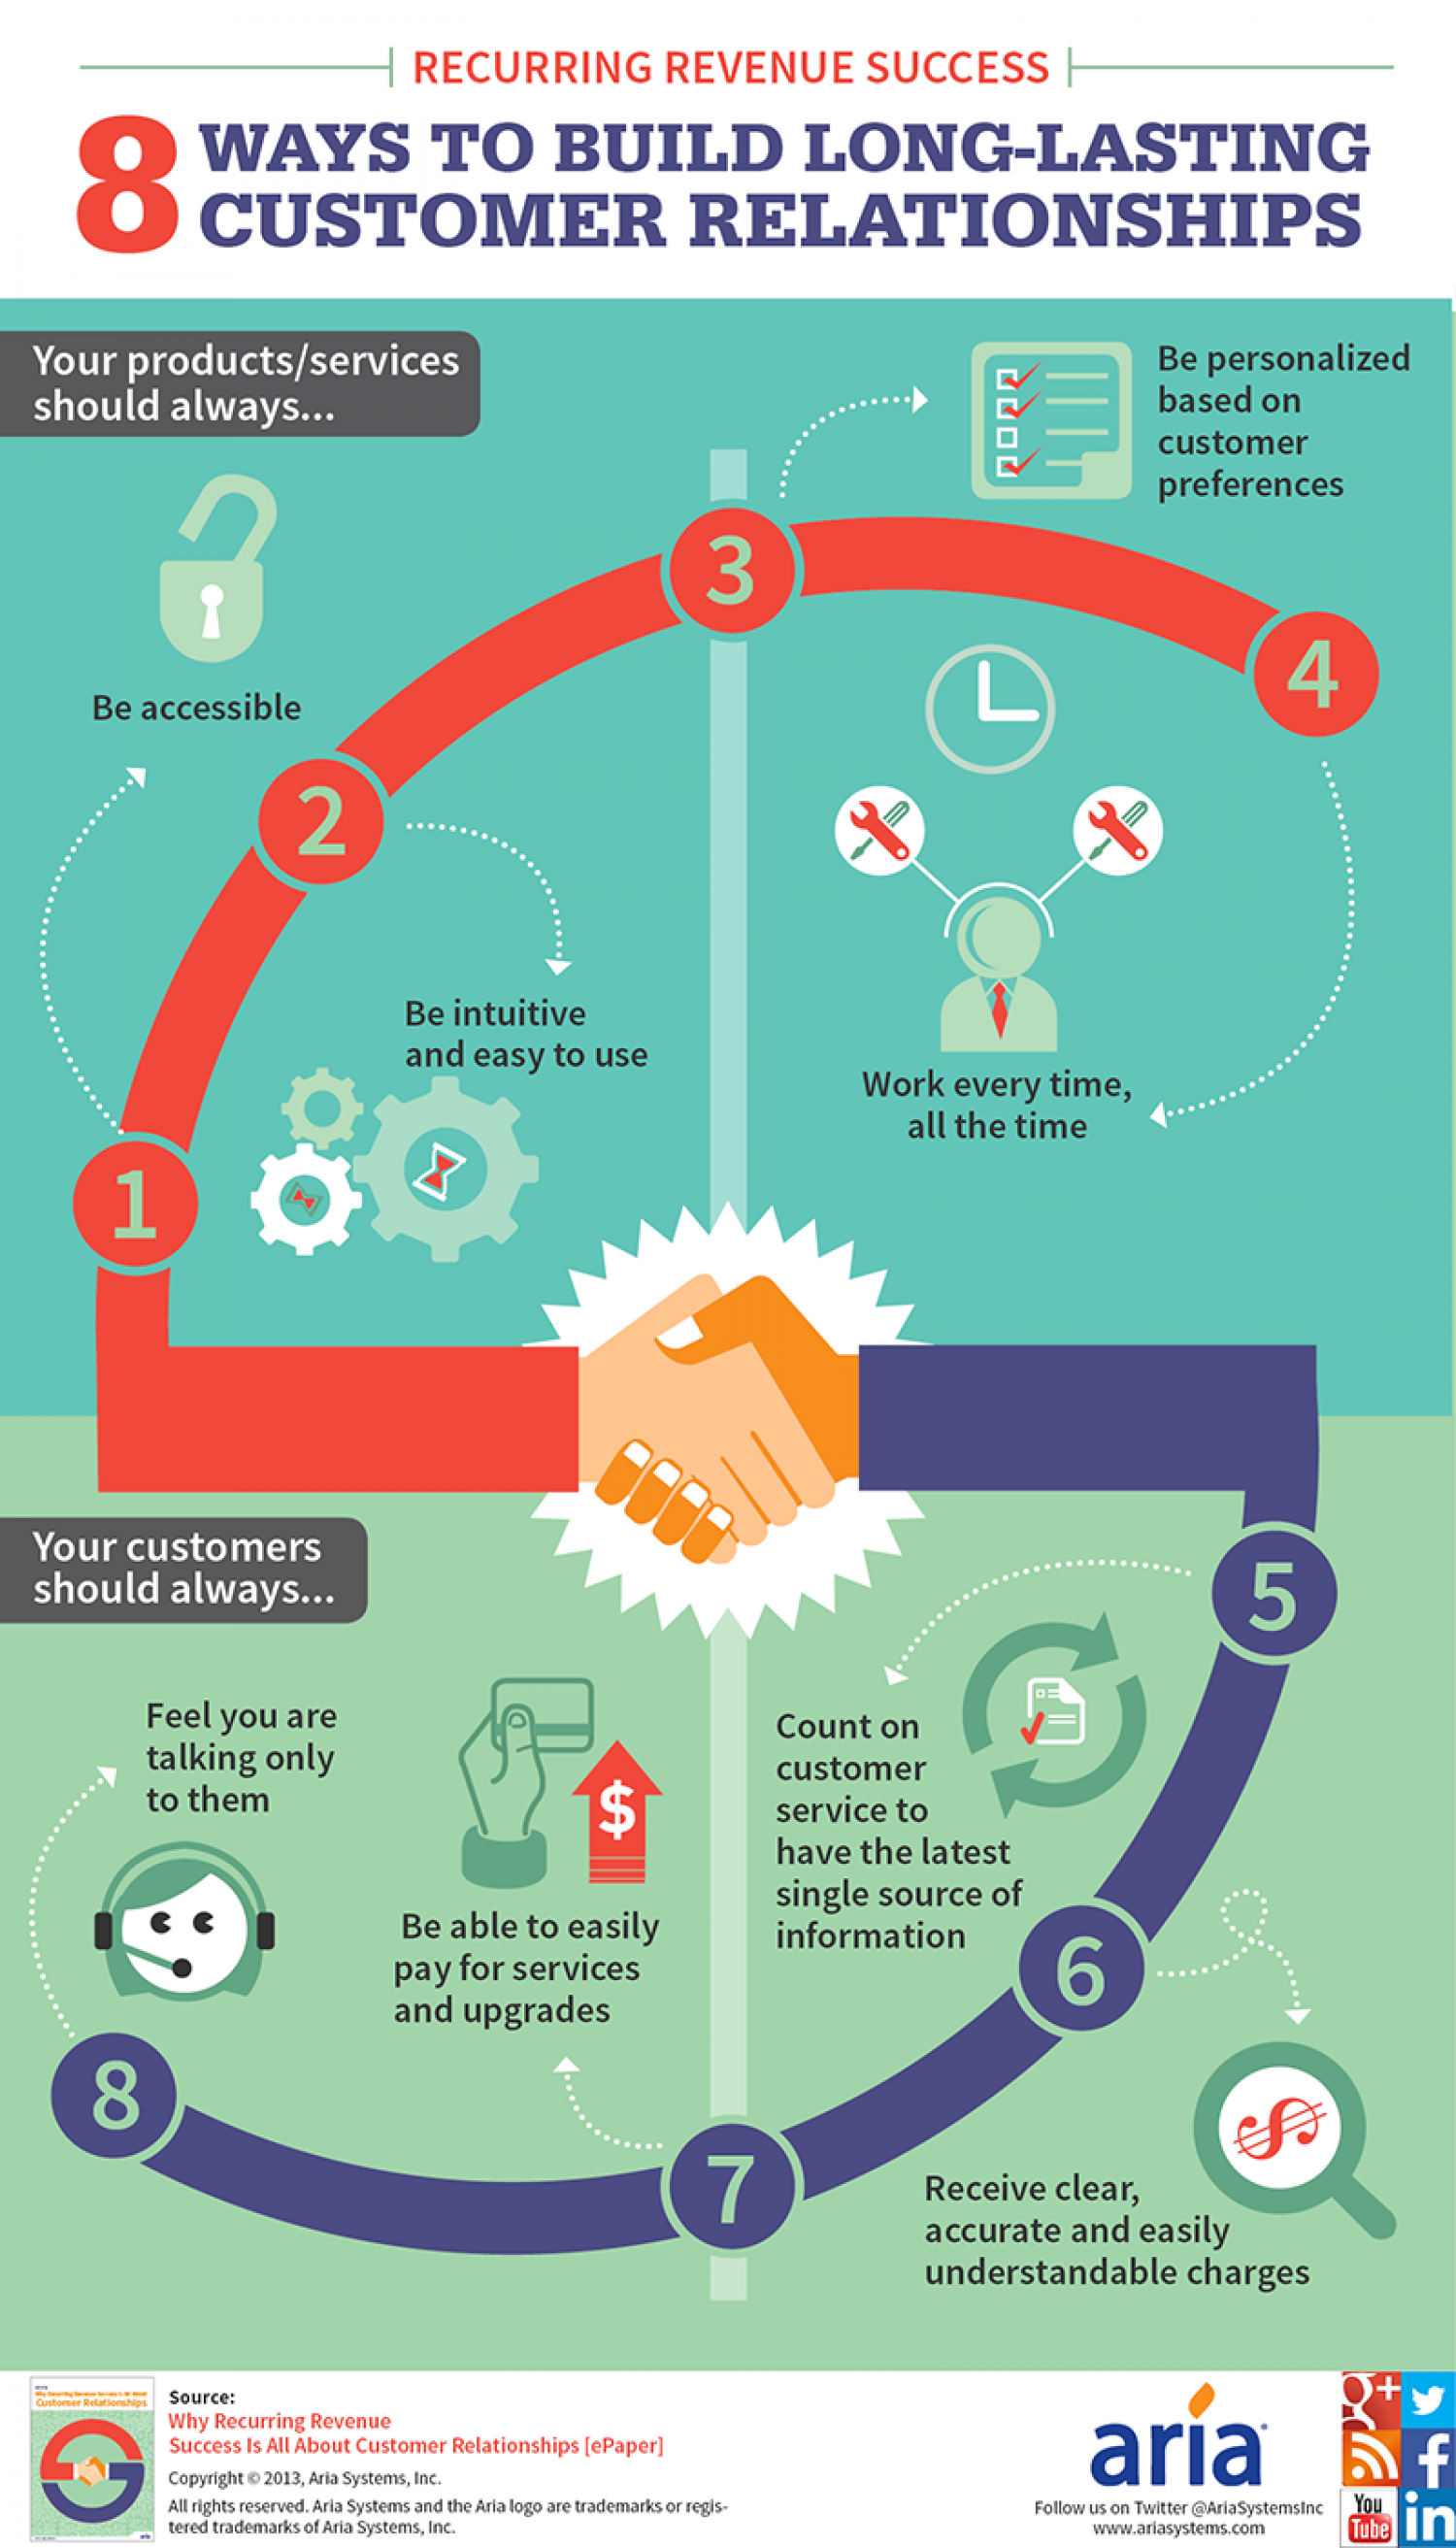 Recurring Revenue Success: 8 Ways to Build Long-lasting Customer Relationships Infographic